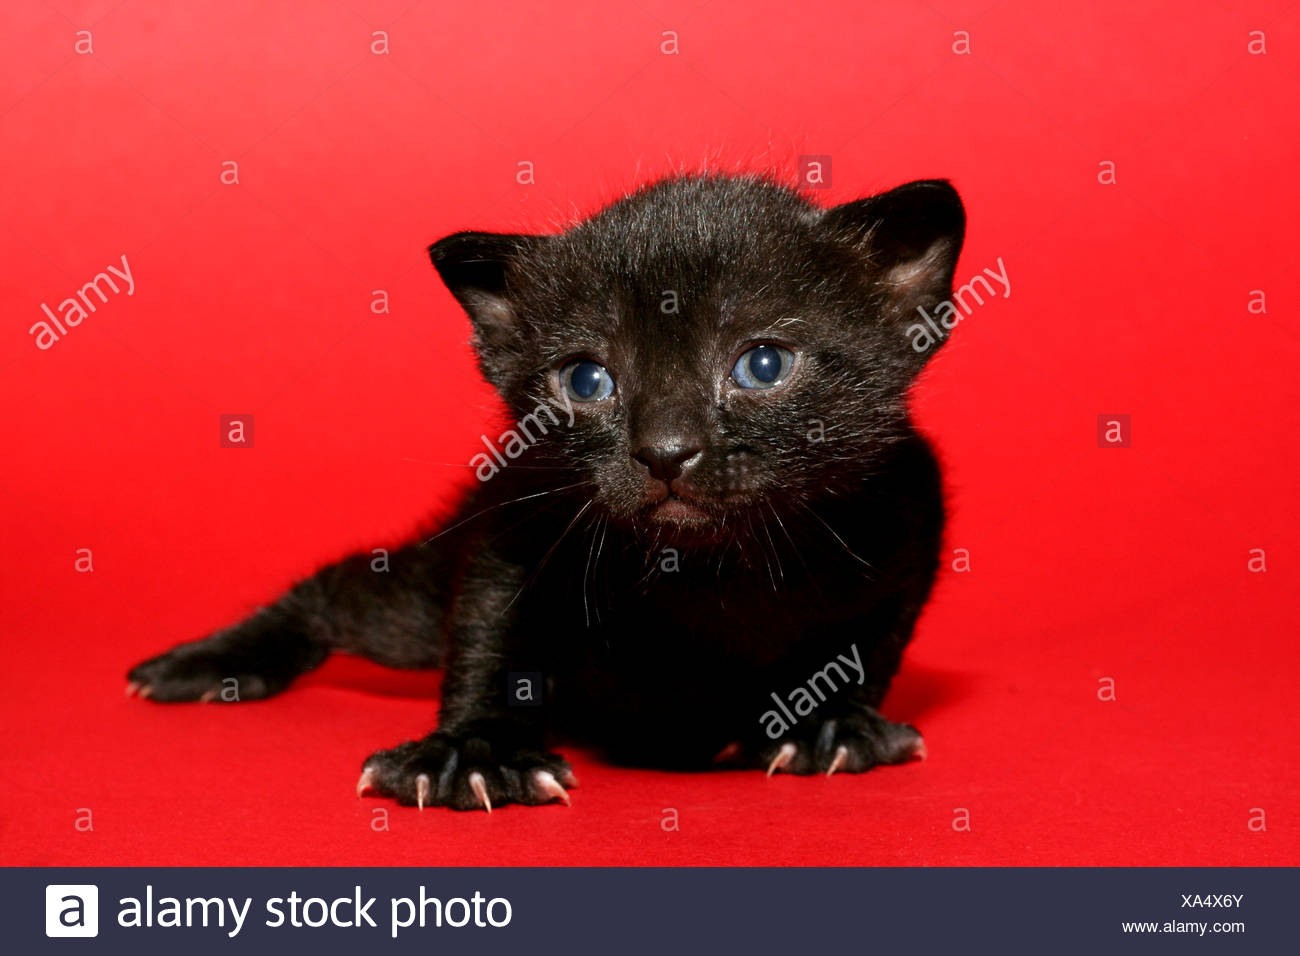 one week old kitten on red background nails protruding - Stock Image